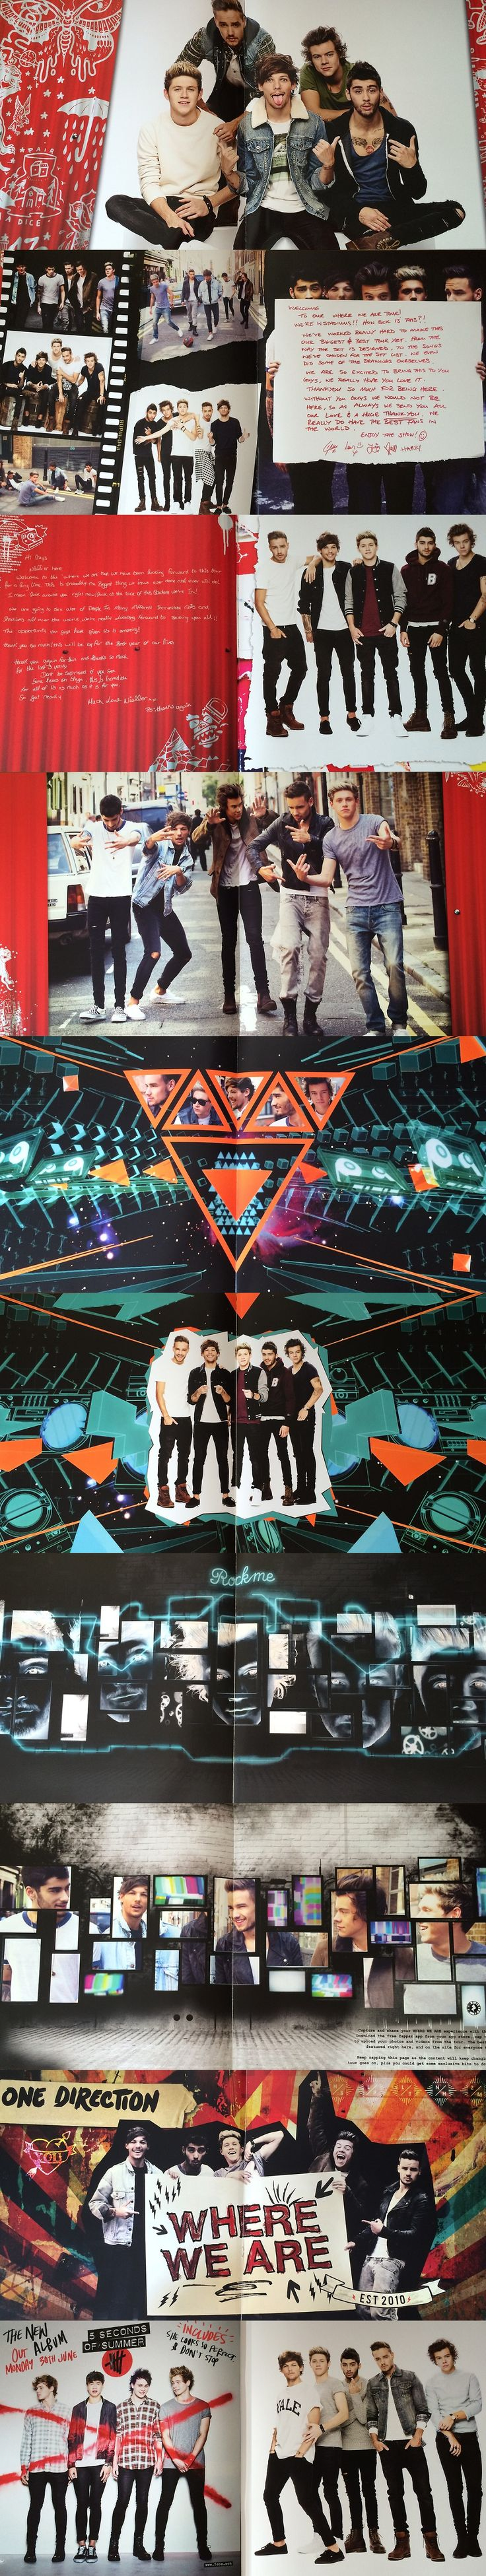 One direction tour bus interior - One Direction Where We Are Tour Booklet